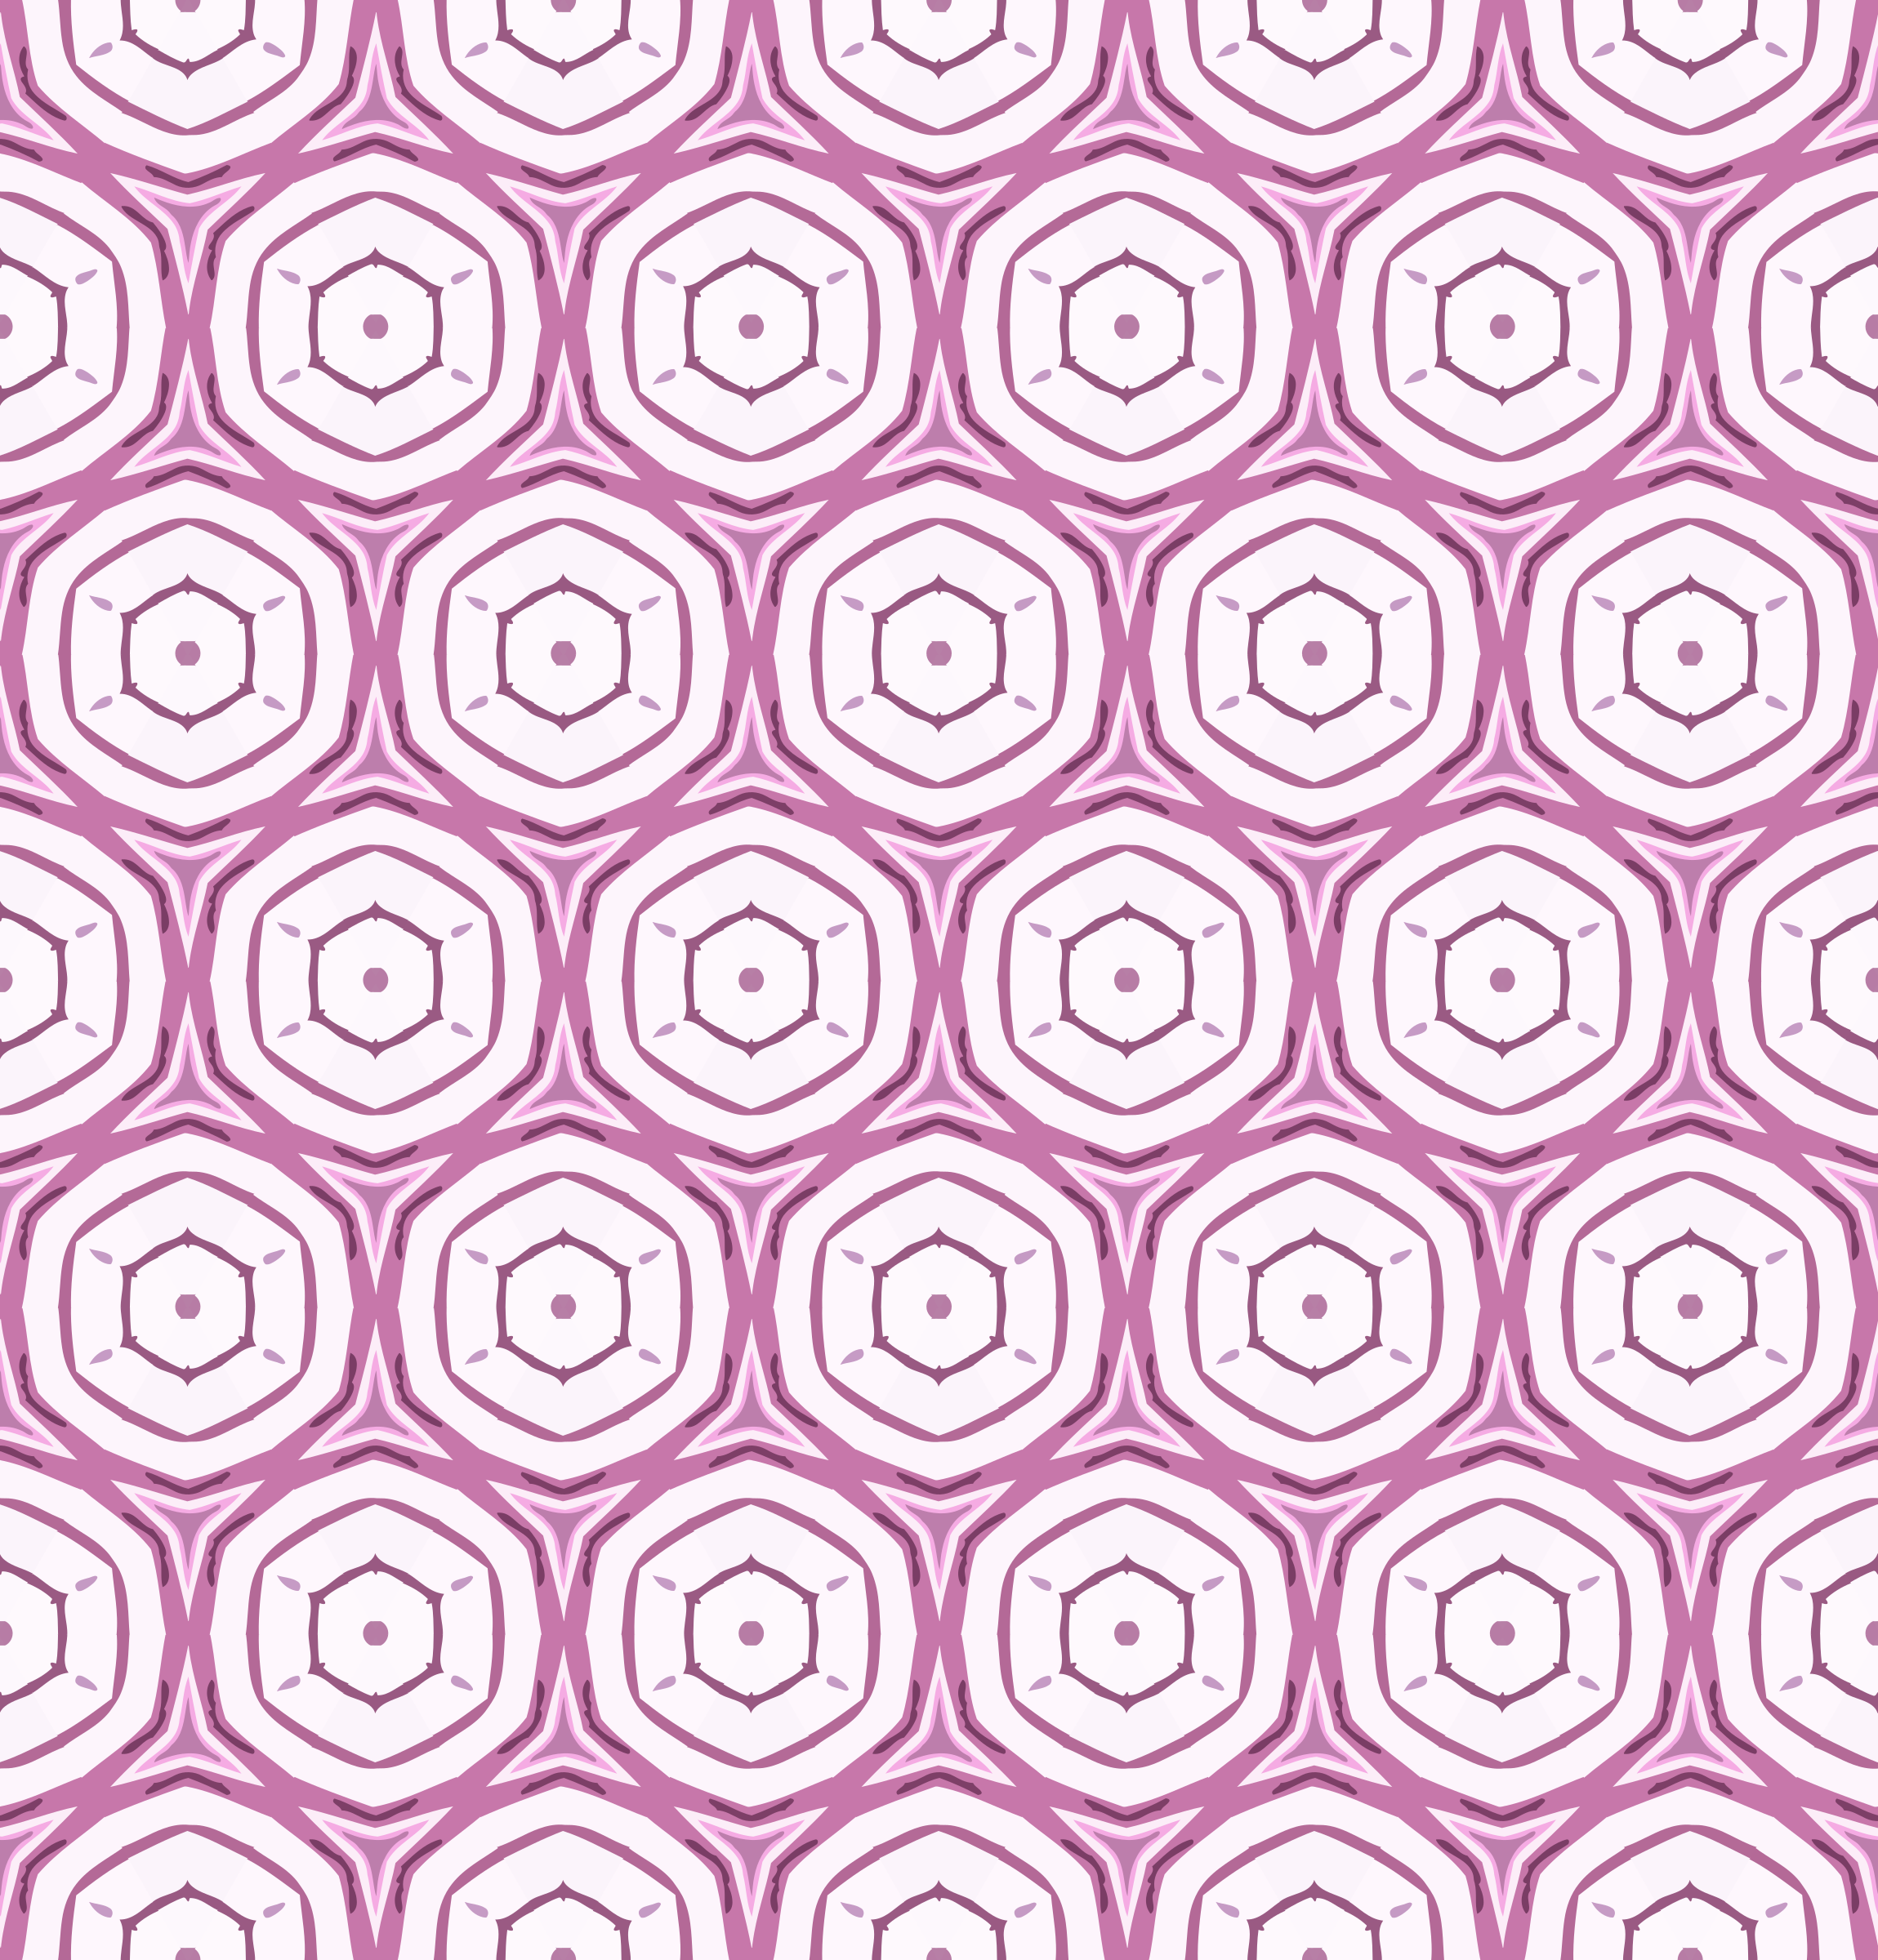 Background pattern 157 (colour 3) by Firkin